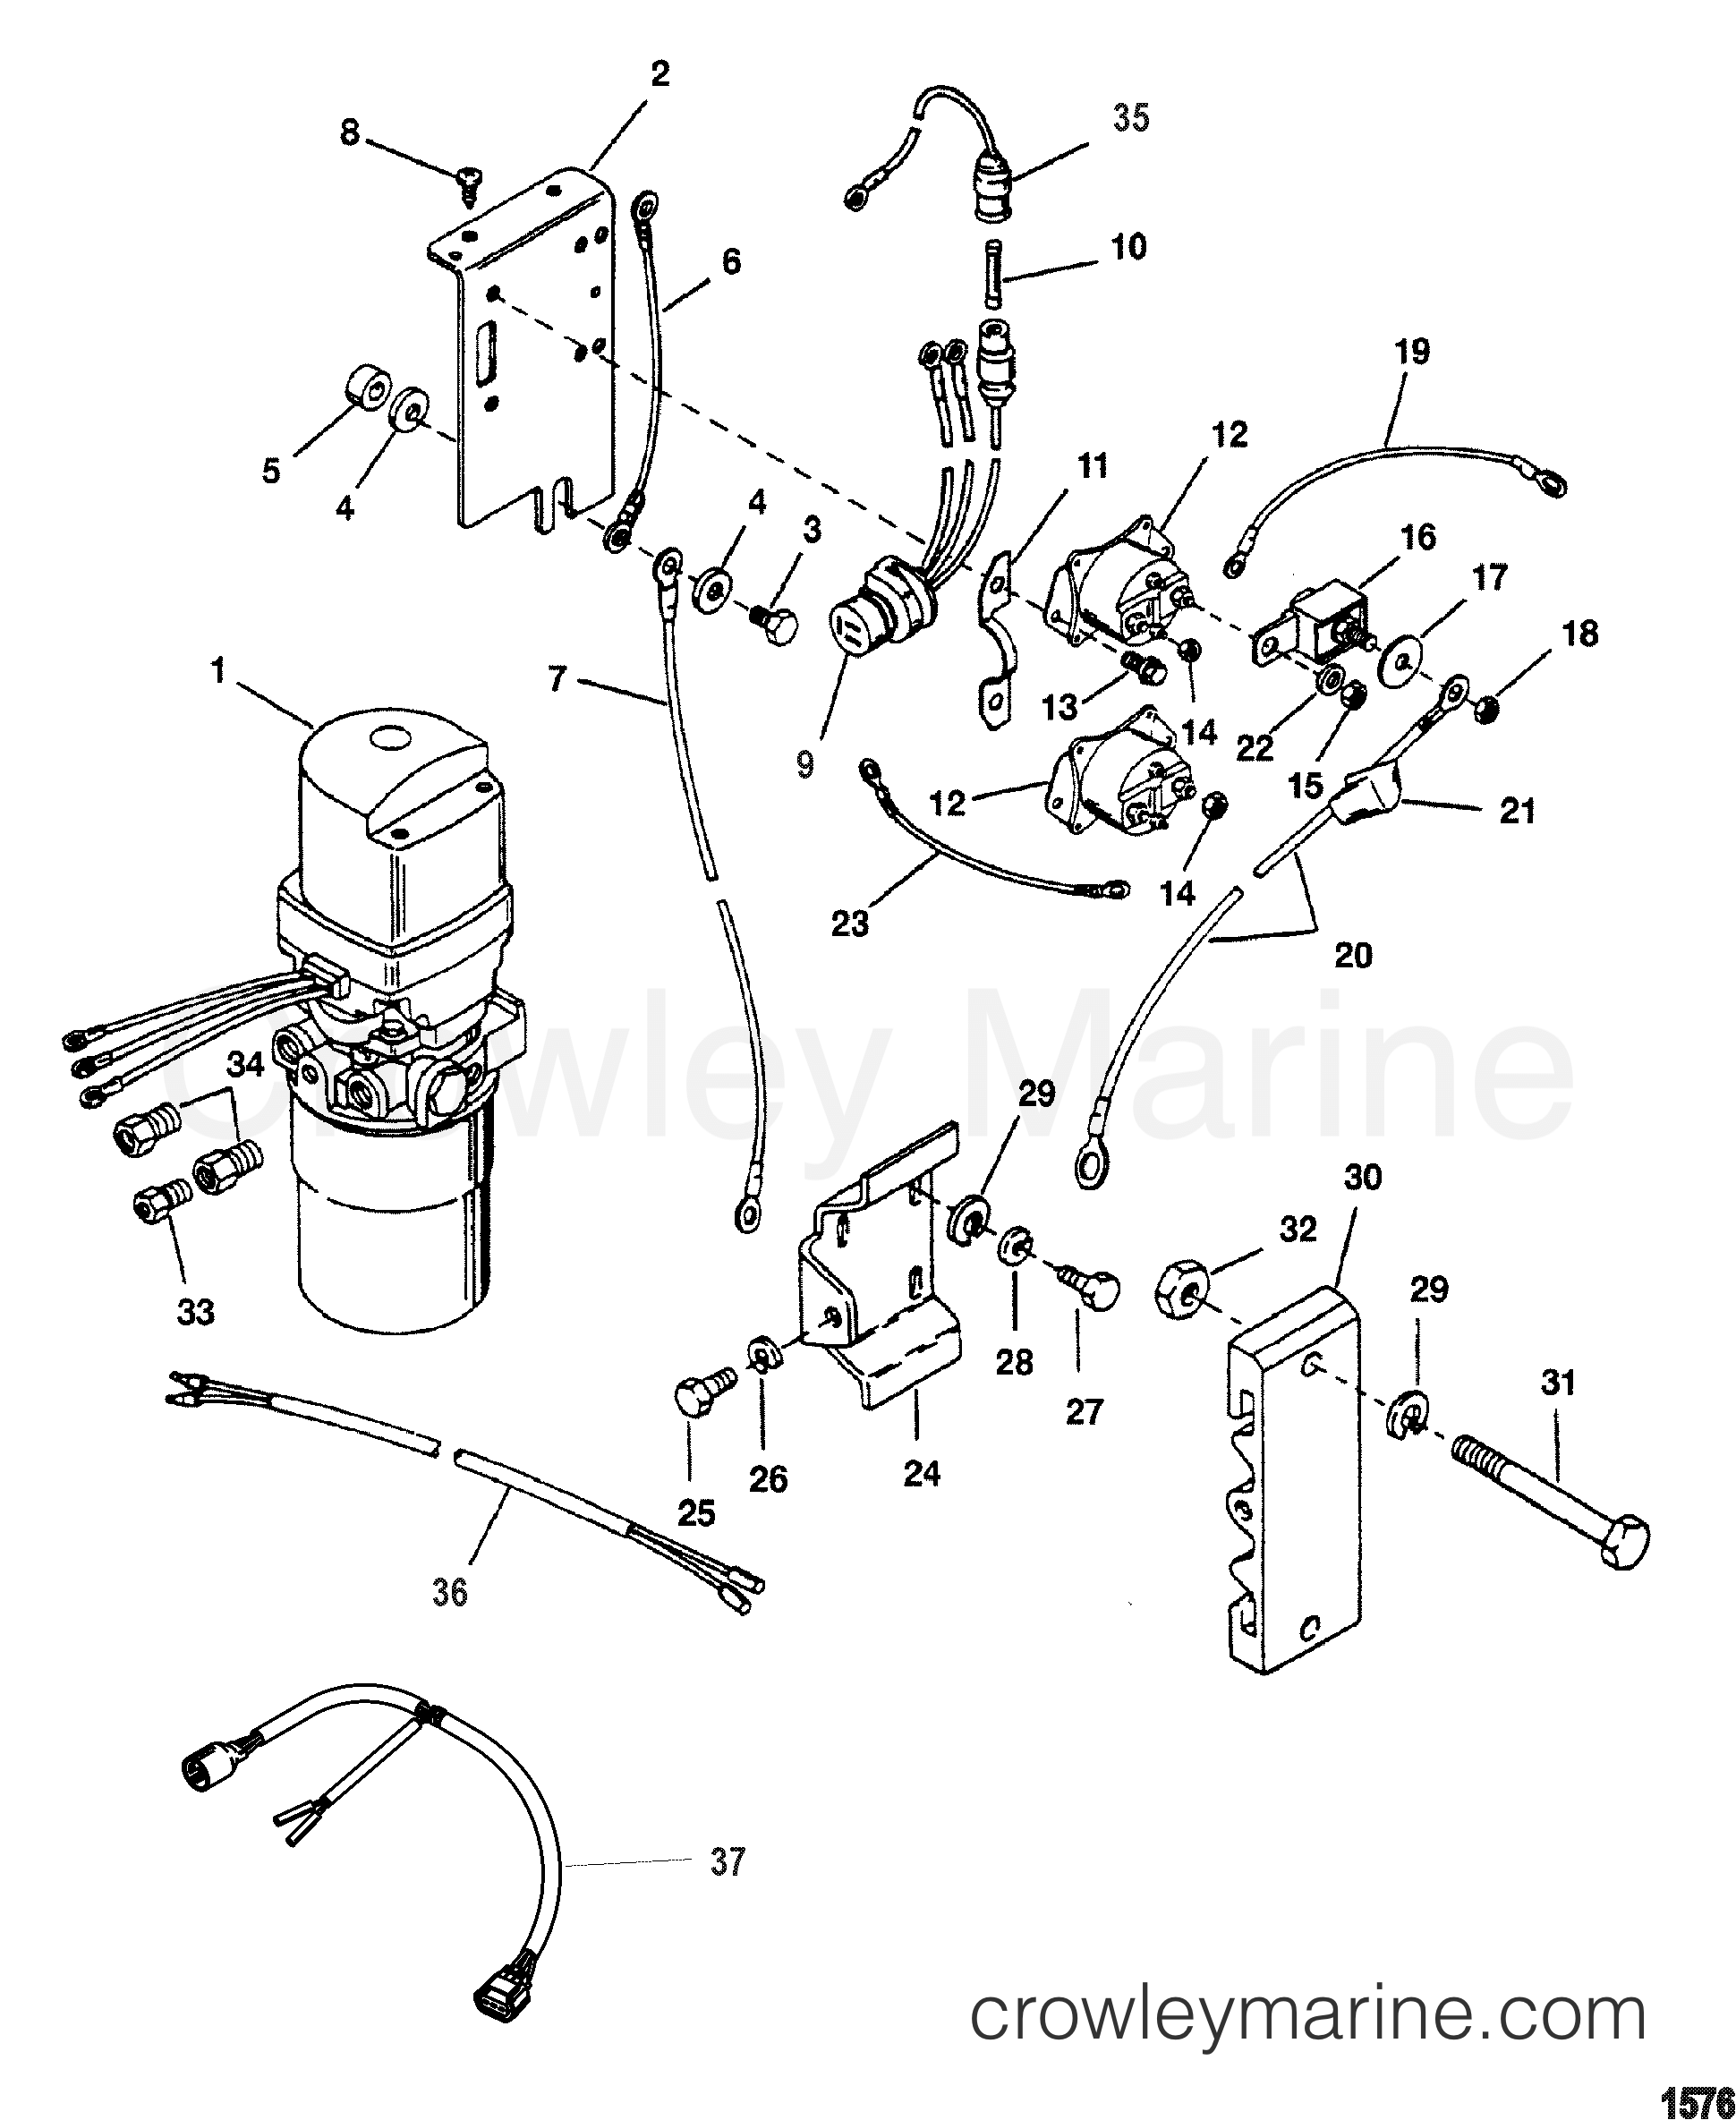 Hydraulic Pump And Mounting Brackets